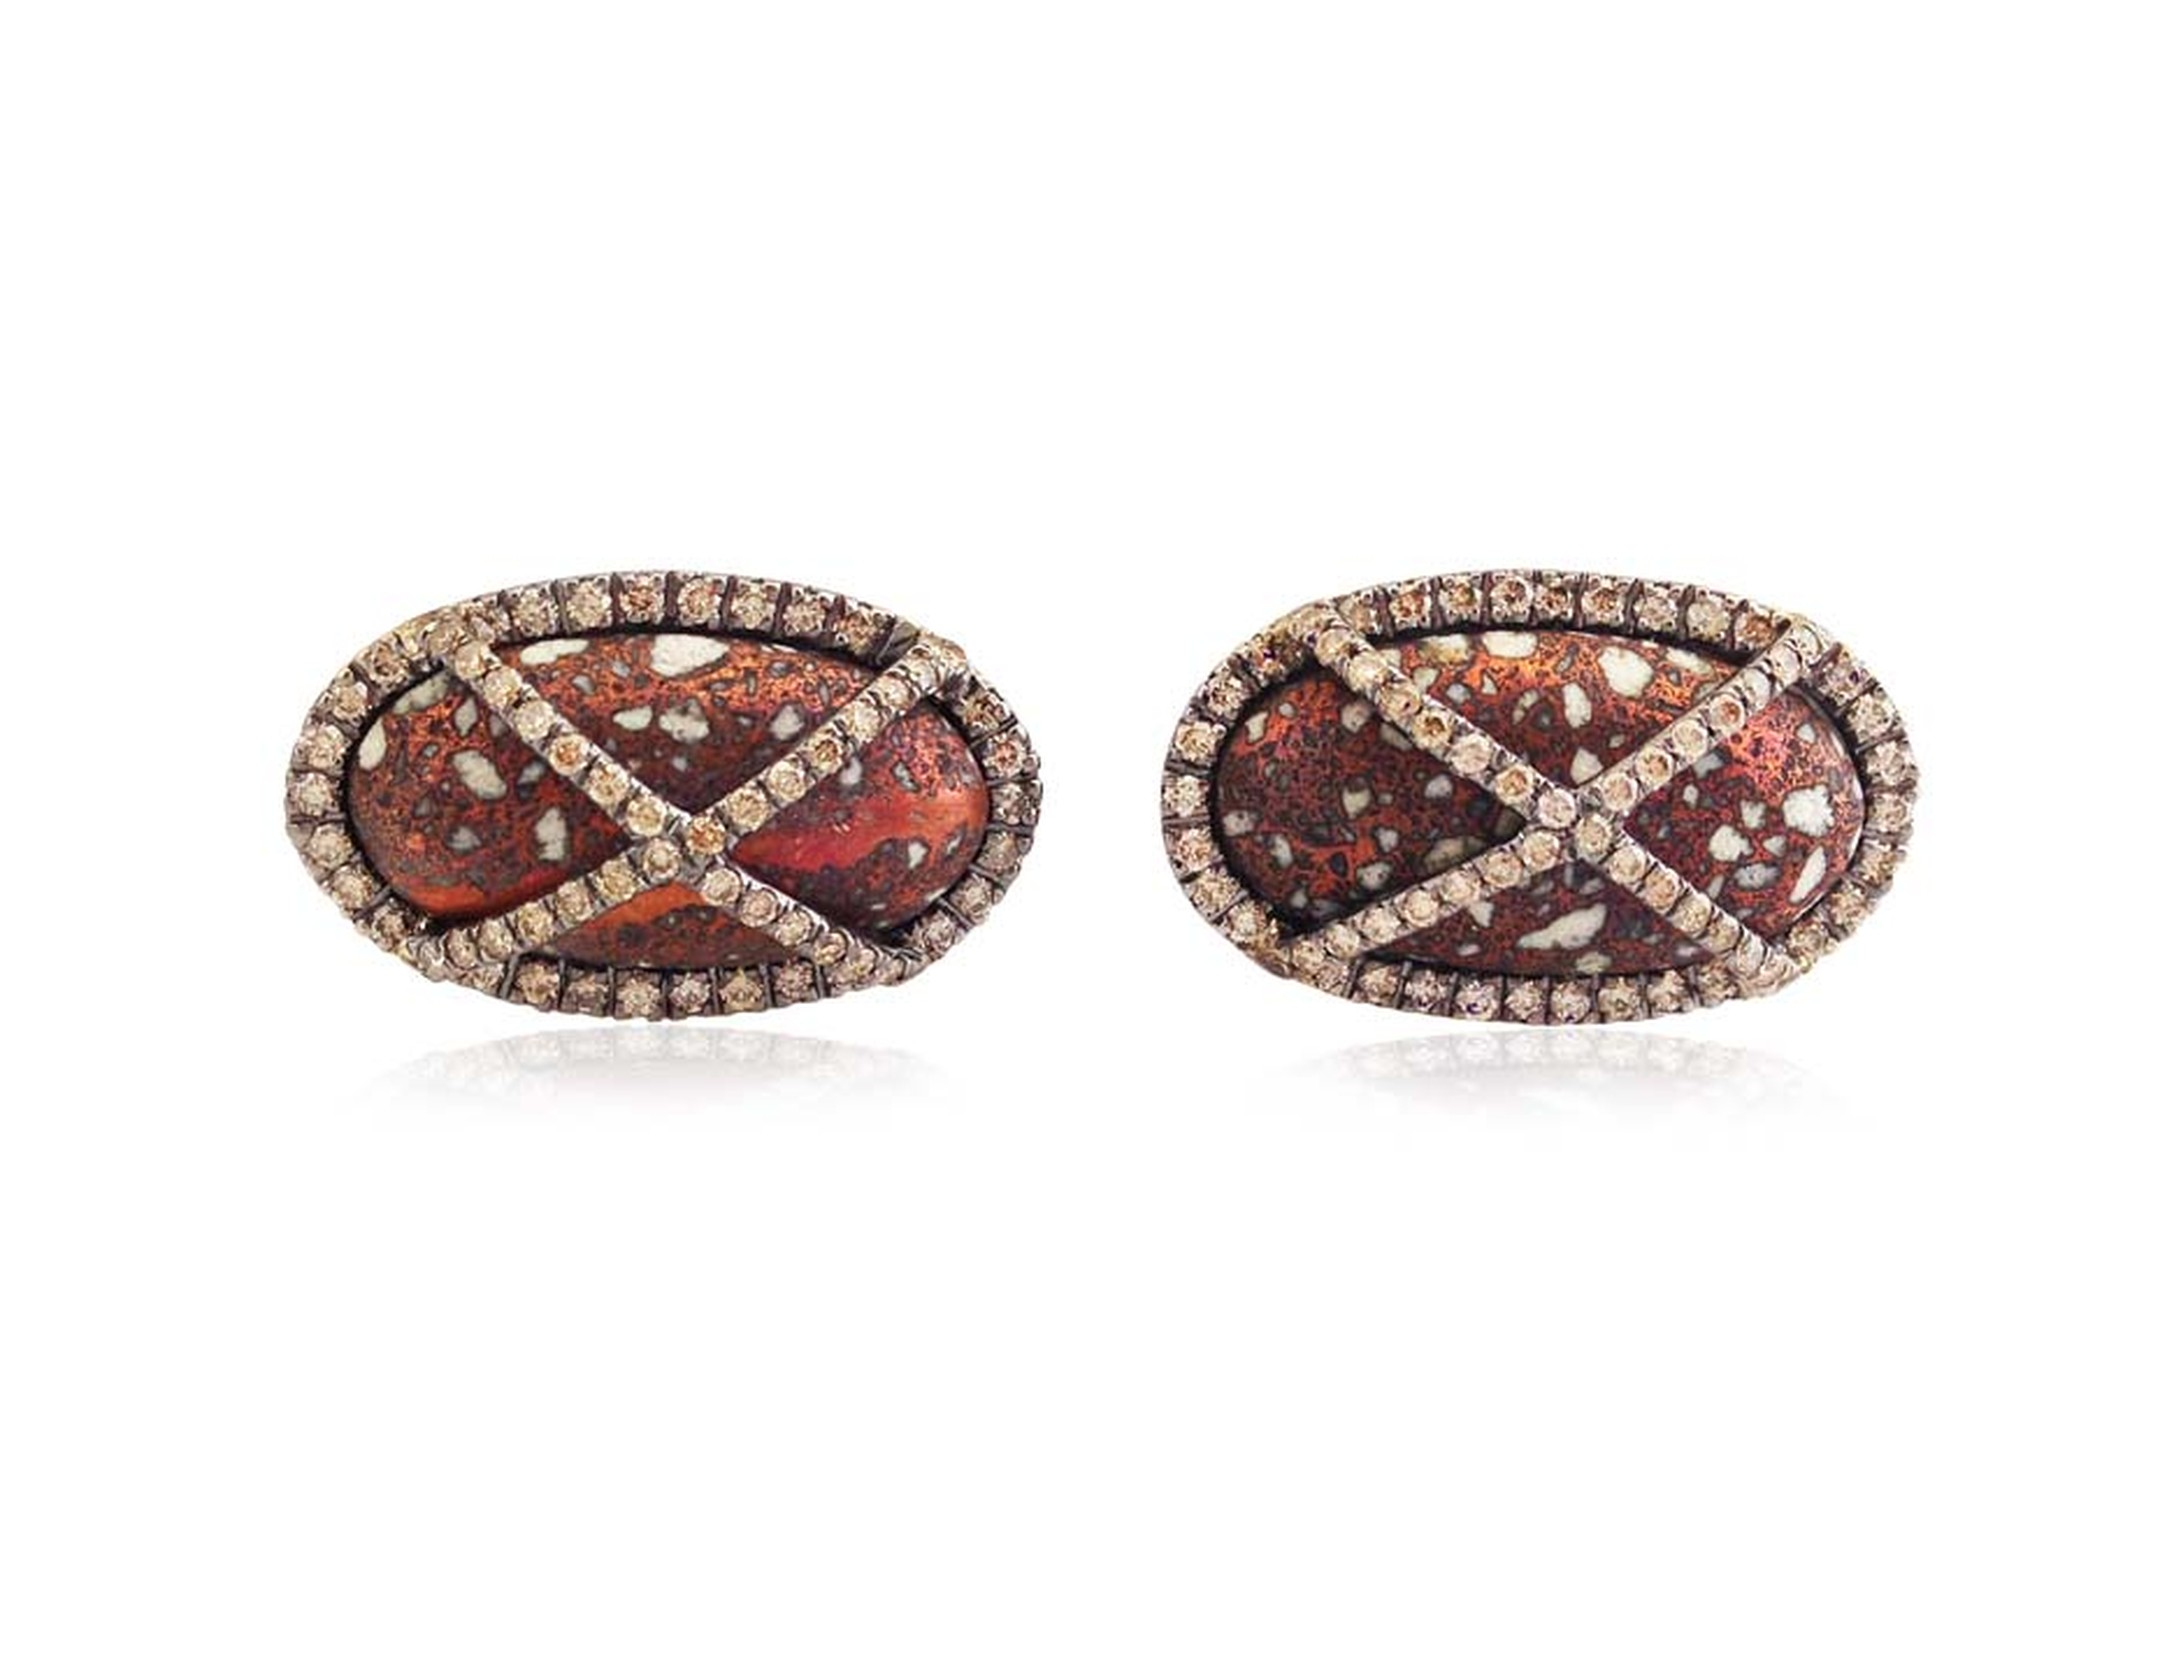 Colette cufflinks with diamonds over deep red-brown jasper.